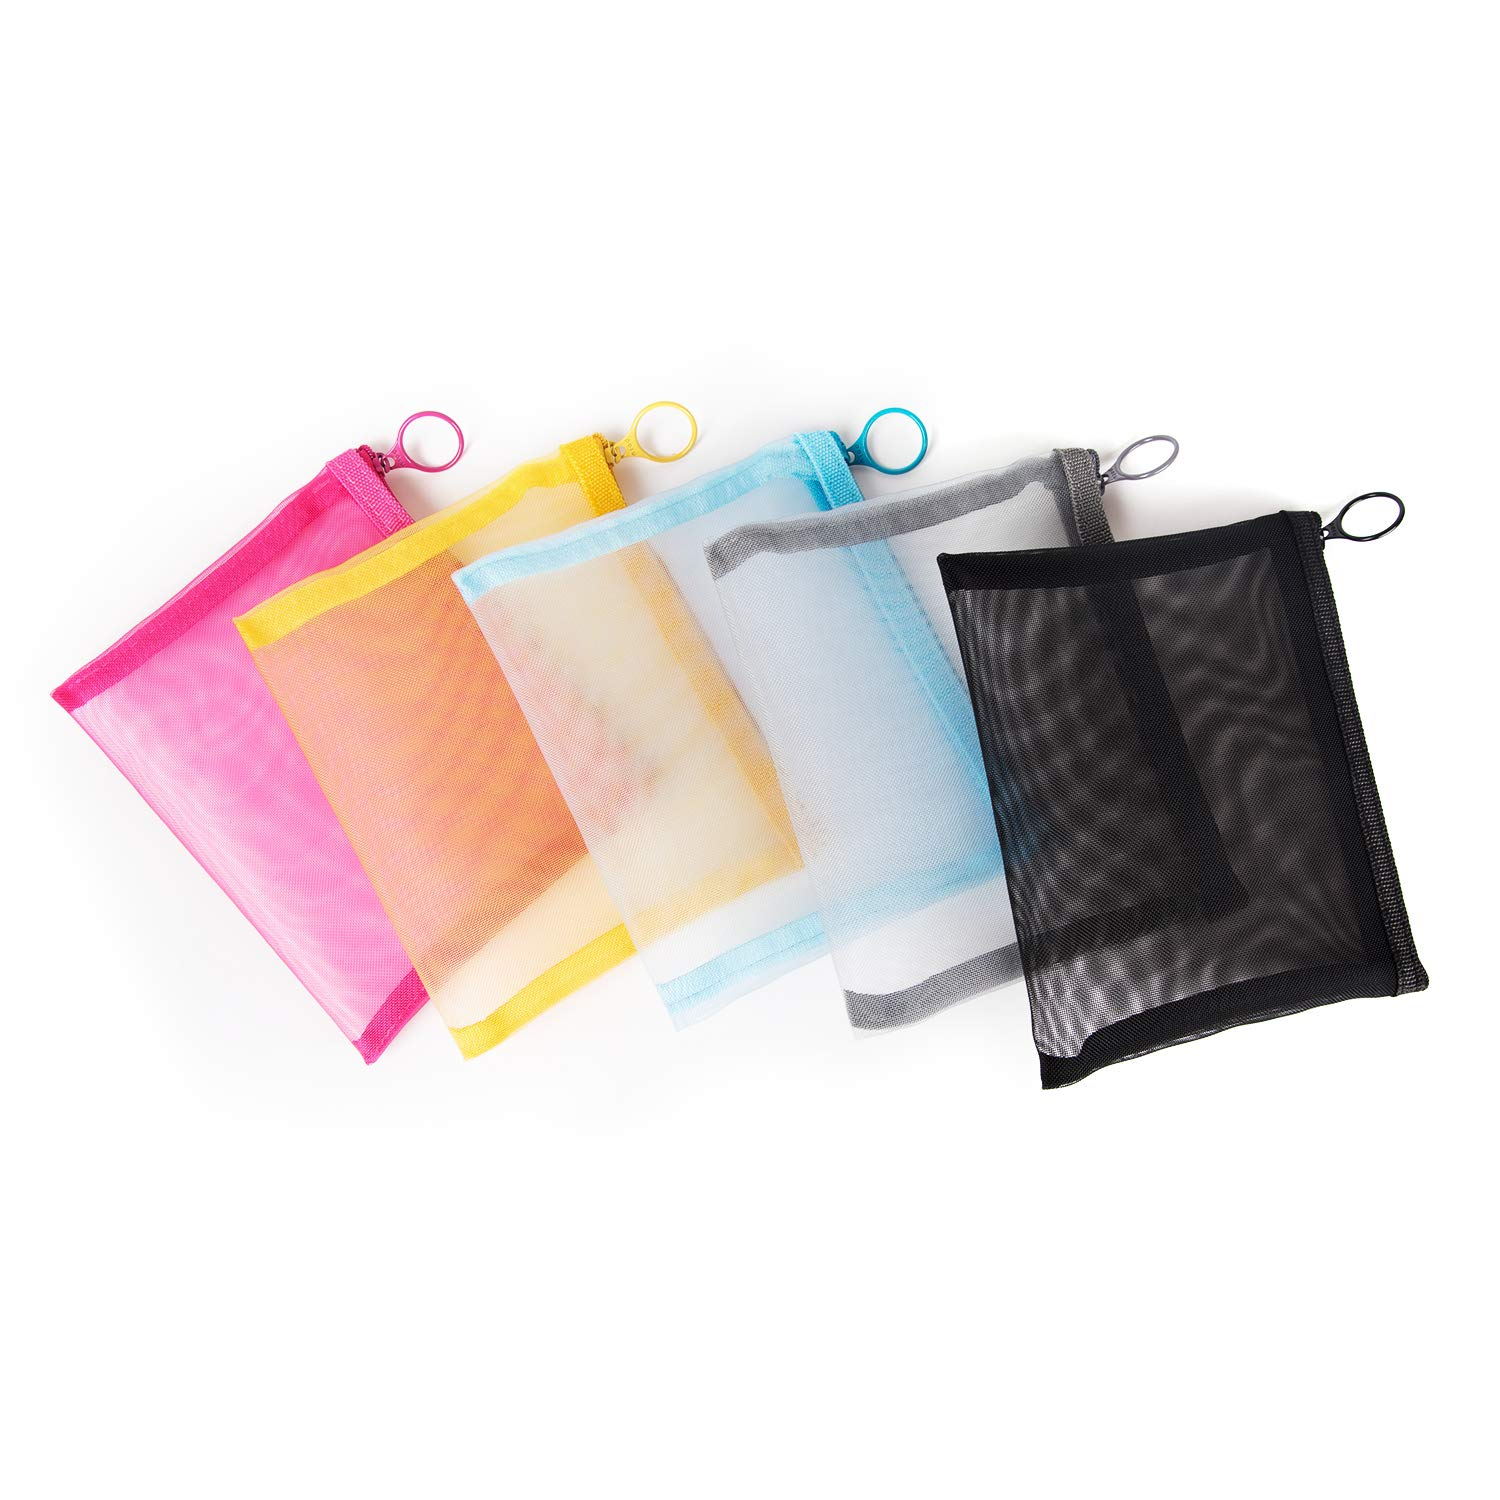 Patu Zipper Mesh Bags, Size M / A6, 5 Pieces, Beauty Makeup Cosmetic Accessories Organizer, Travel Toiletry Kit Set Storage Pouch, Assorted Colors